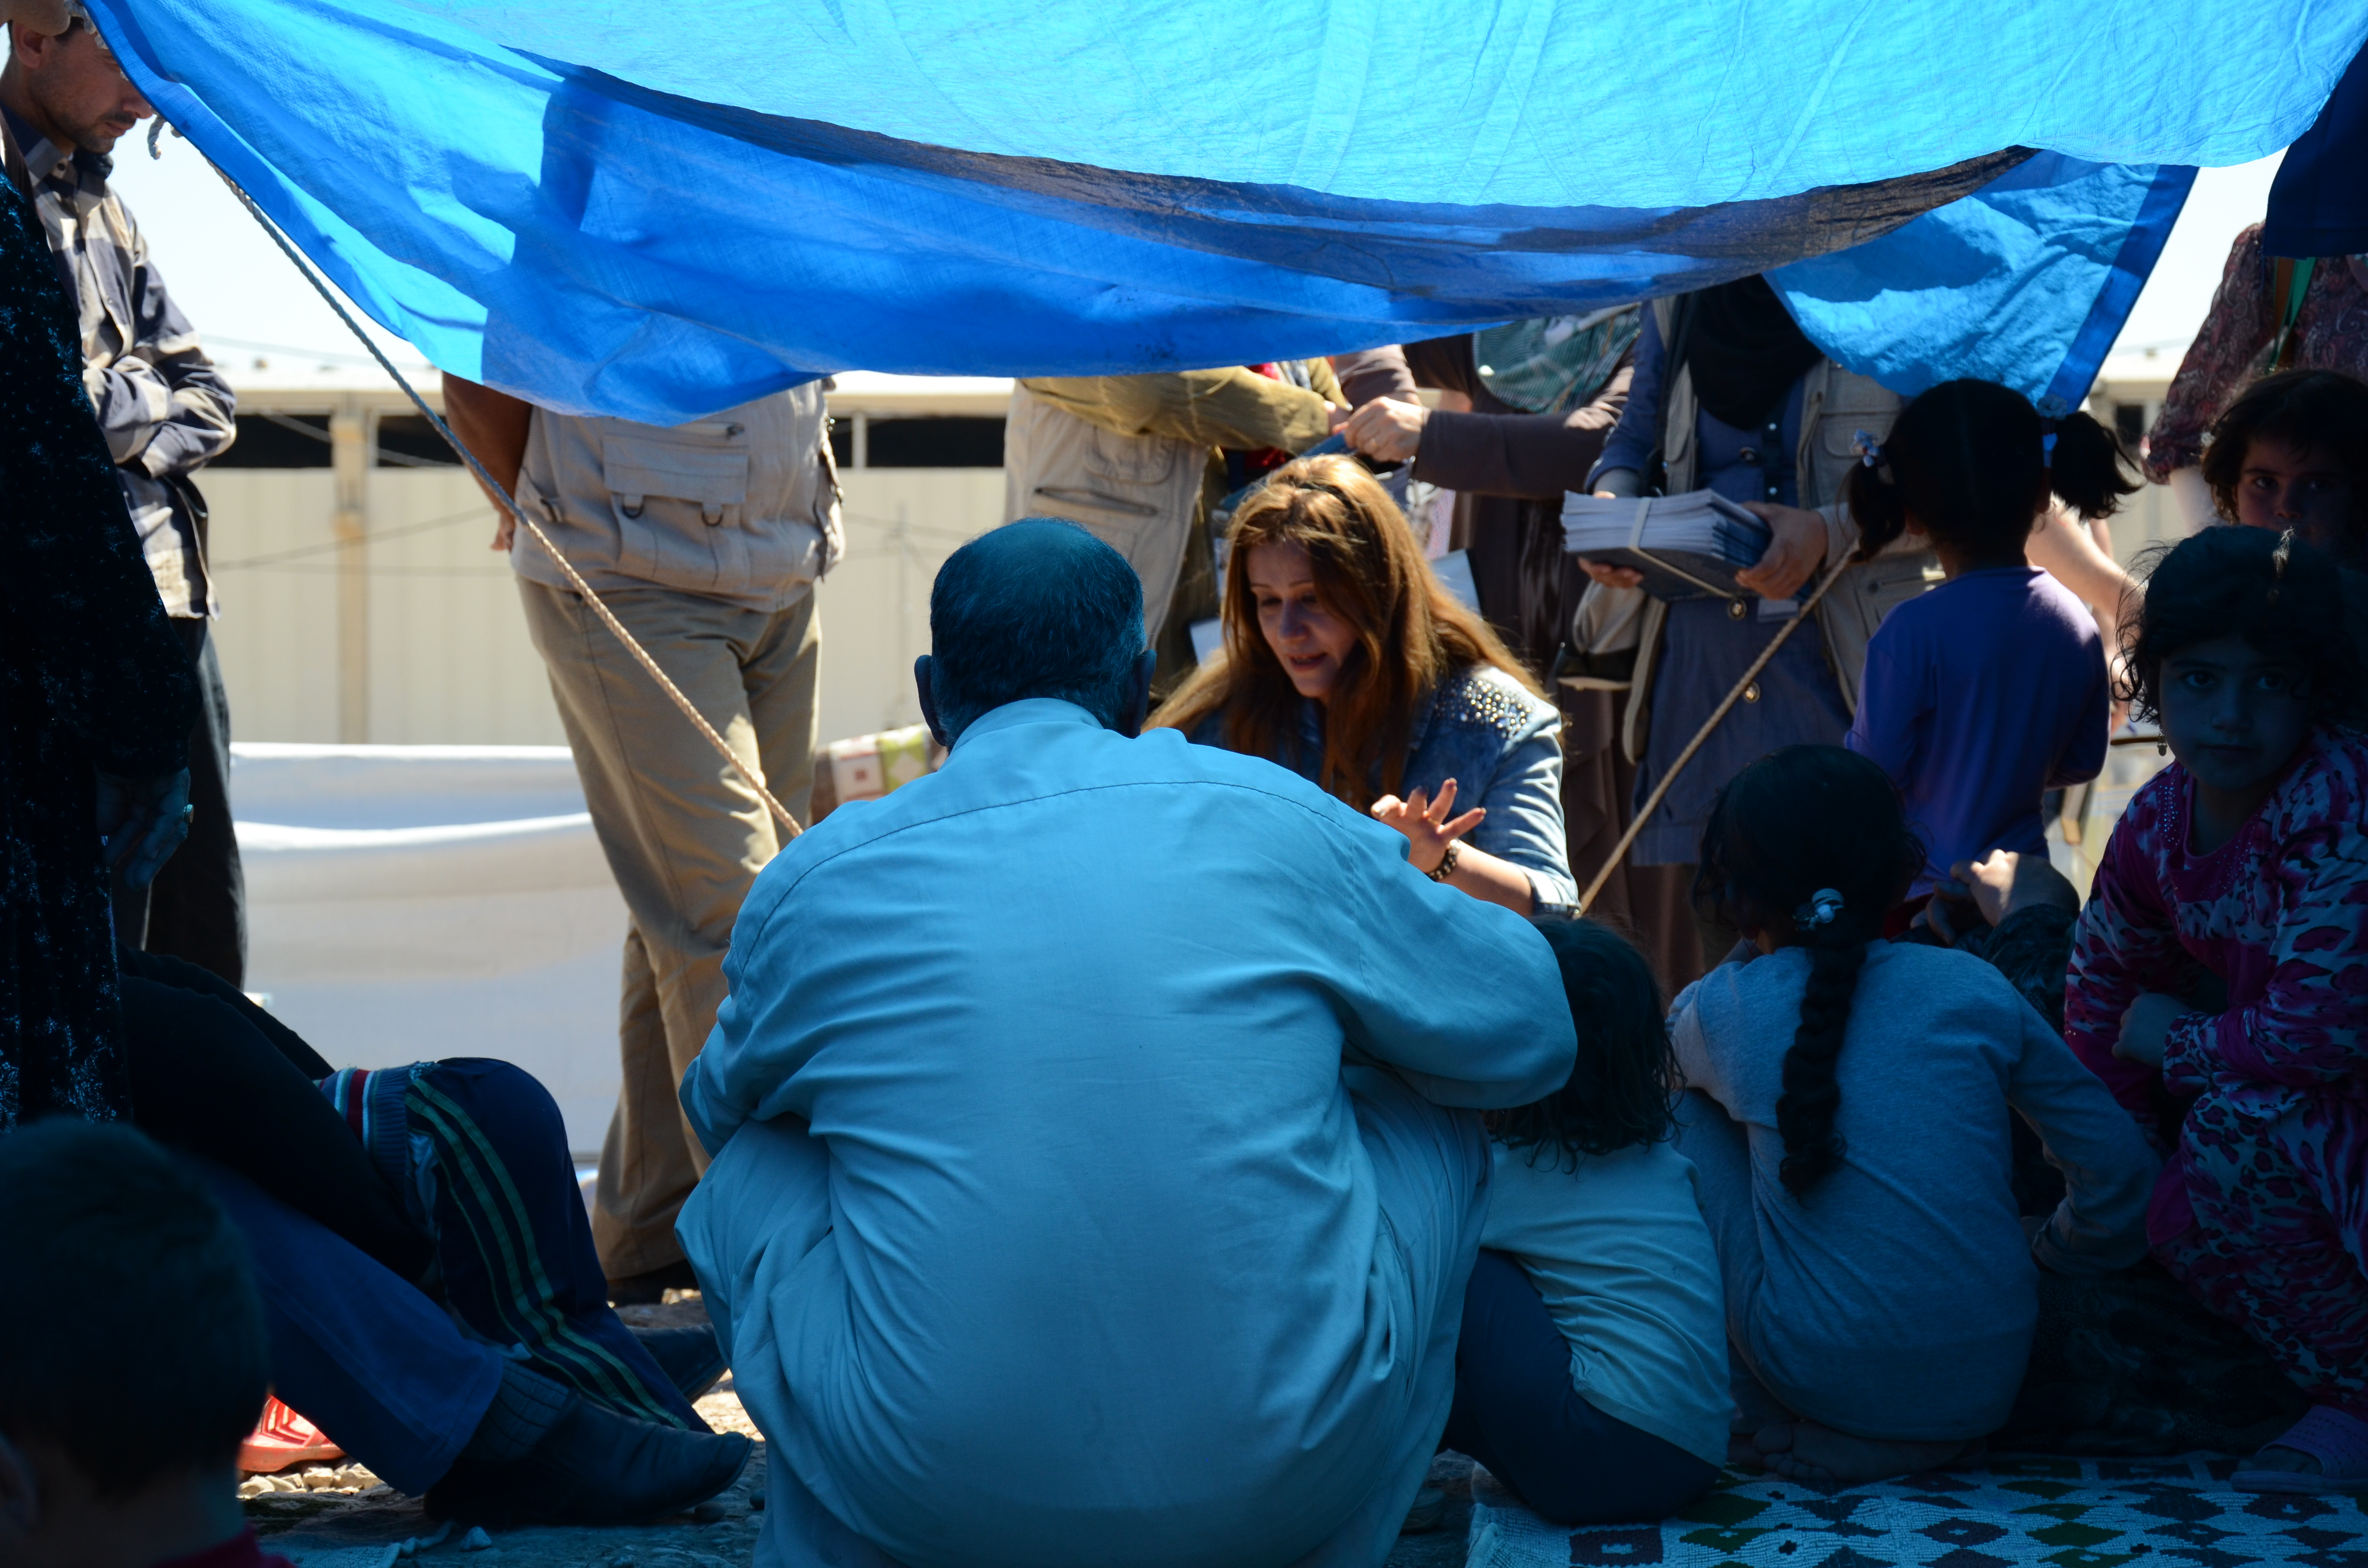 Community mobilizers talk to displaced families in Baherka camp in Erbil, northern Iraq about the importance of having their families fully vaccinated. (c) Photo credit: UNICEF Iraq/2015/e of having their families fully vaccinated.